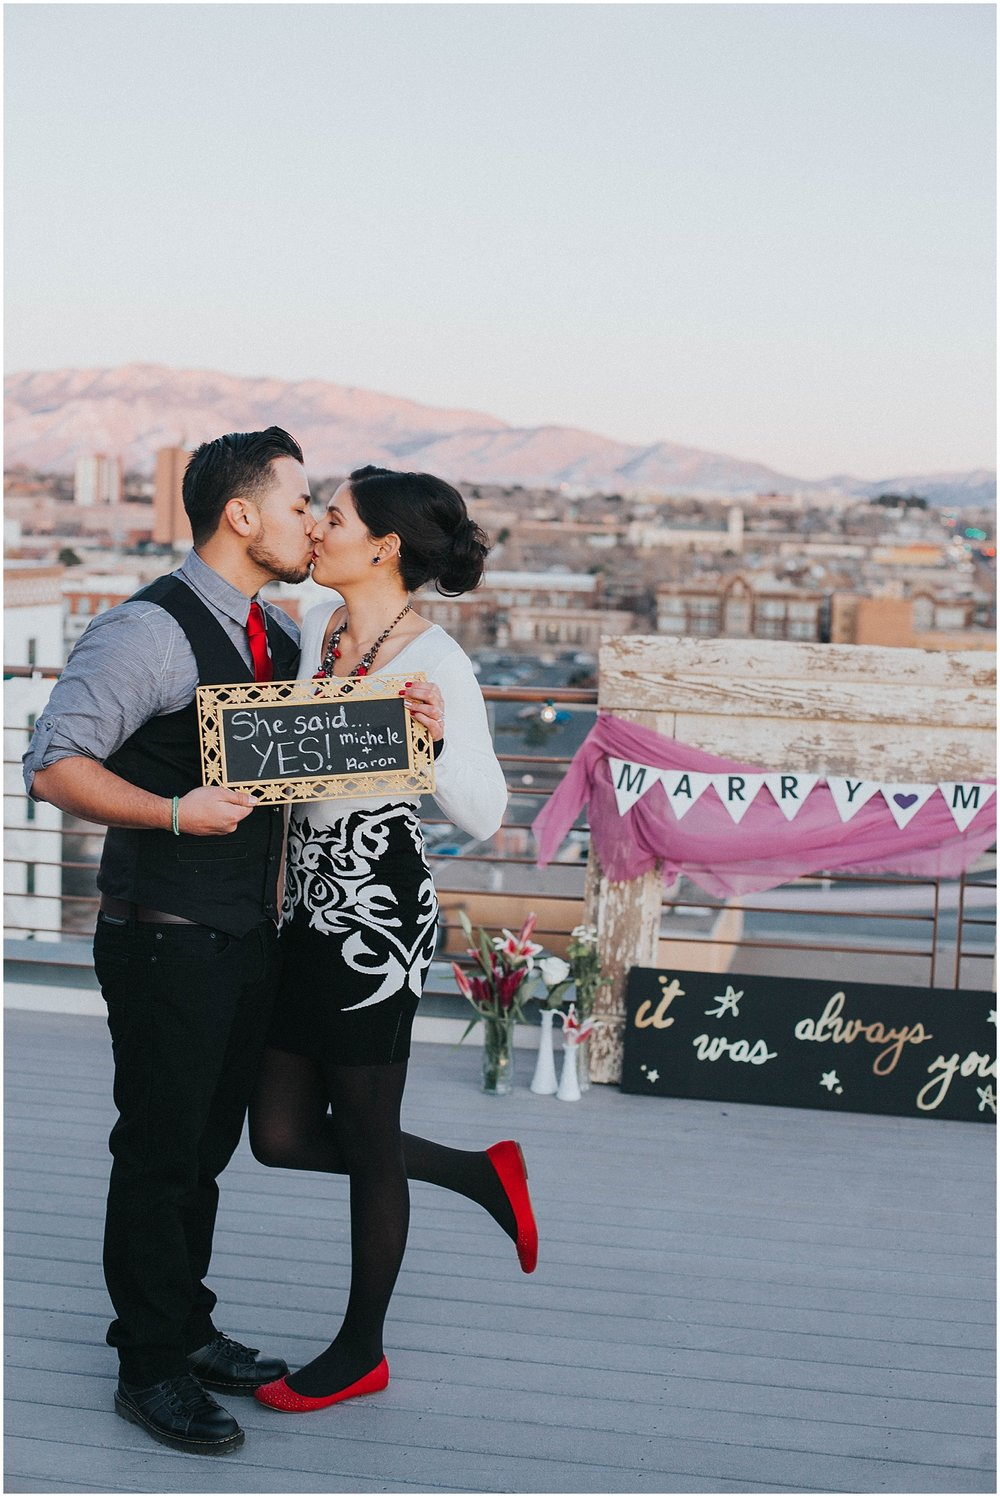 Banque-Lofts-Surprise-Proposal_Albuquerque-Banque-Lofts-Albuquerque-Wedding-Photographer_0015.jpg